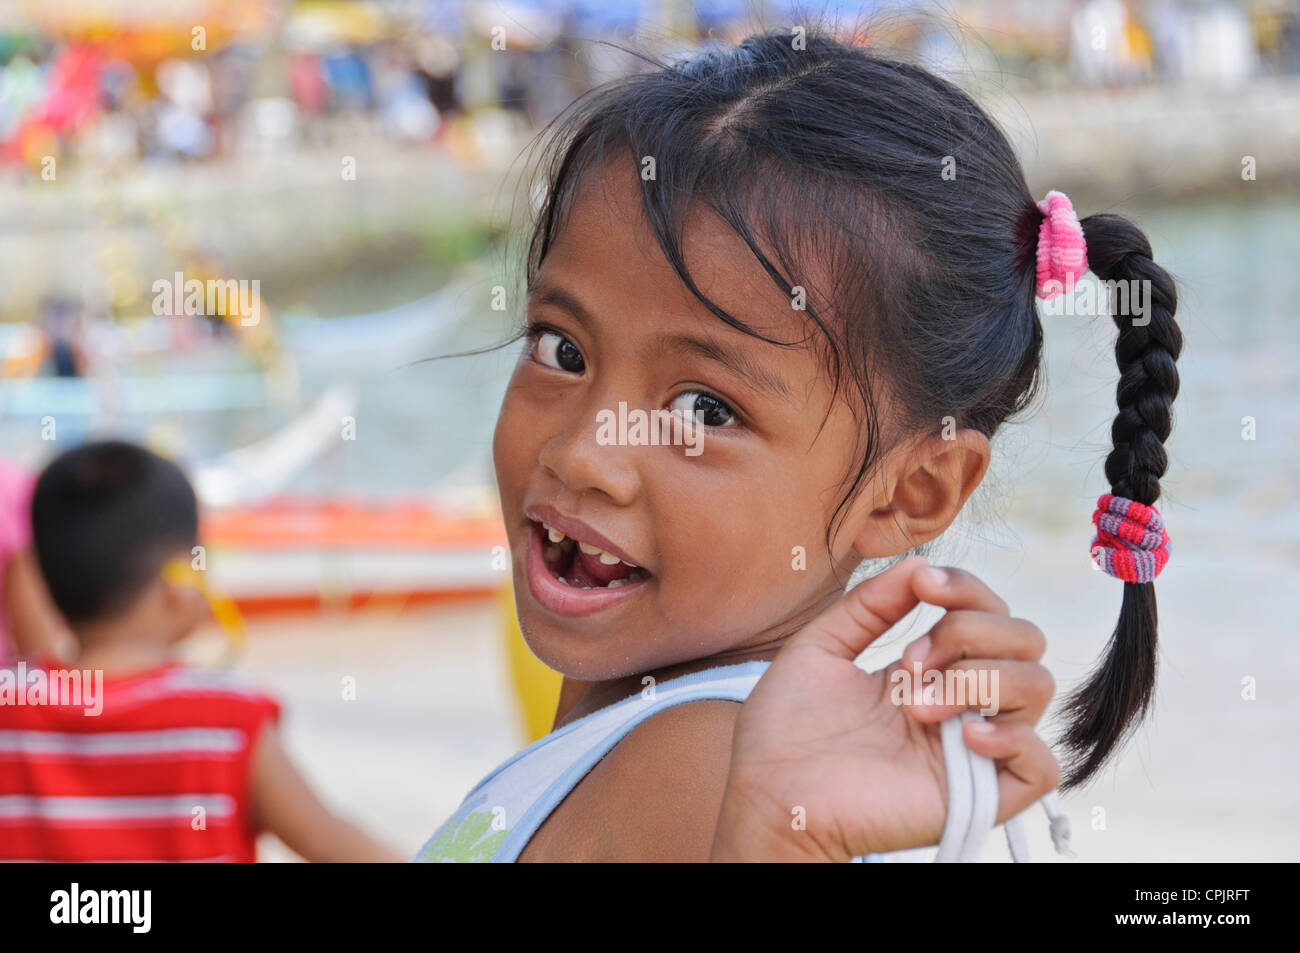 Pretty Smiling Little Asian Girl With Milk Teeth Diastema Tooth Gap Braided Ponytail Hair Sabang Puerto Galera Philippines Asia